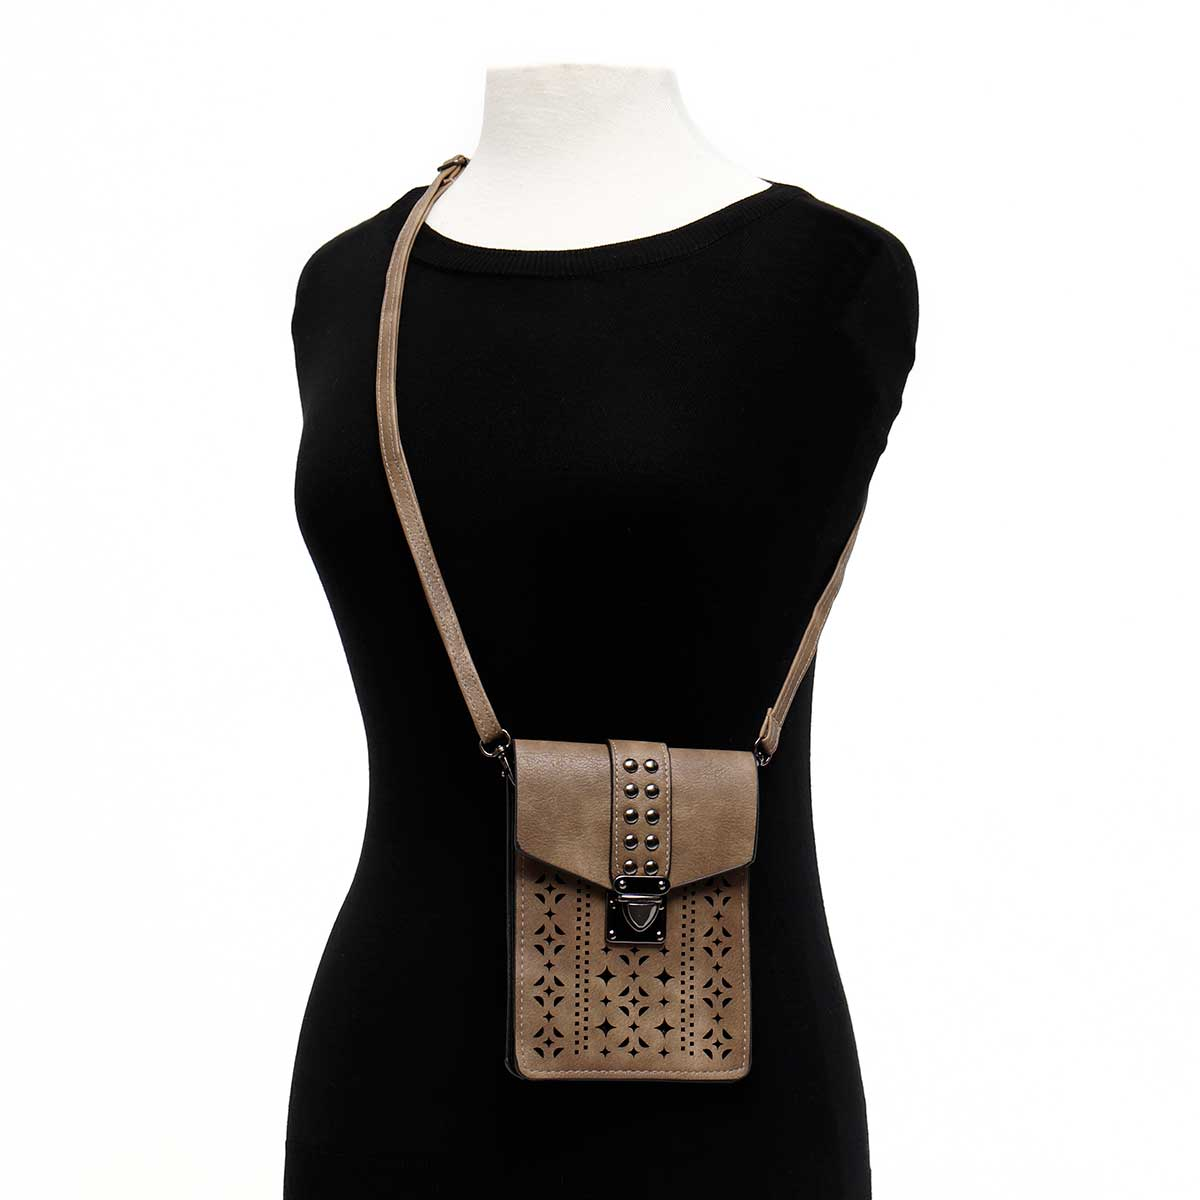 Cross-body Purse with Beaded Flap with Shoulder Strap and Catch